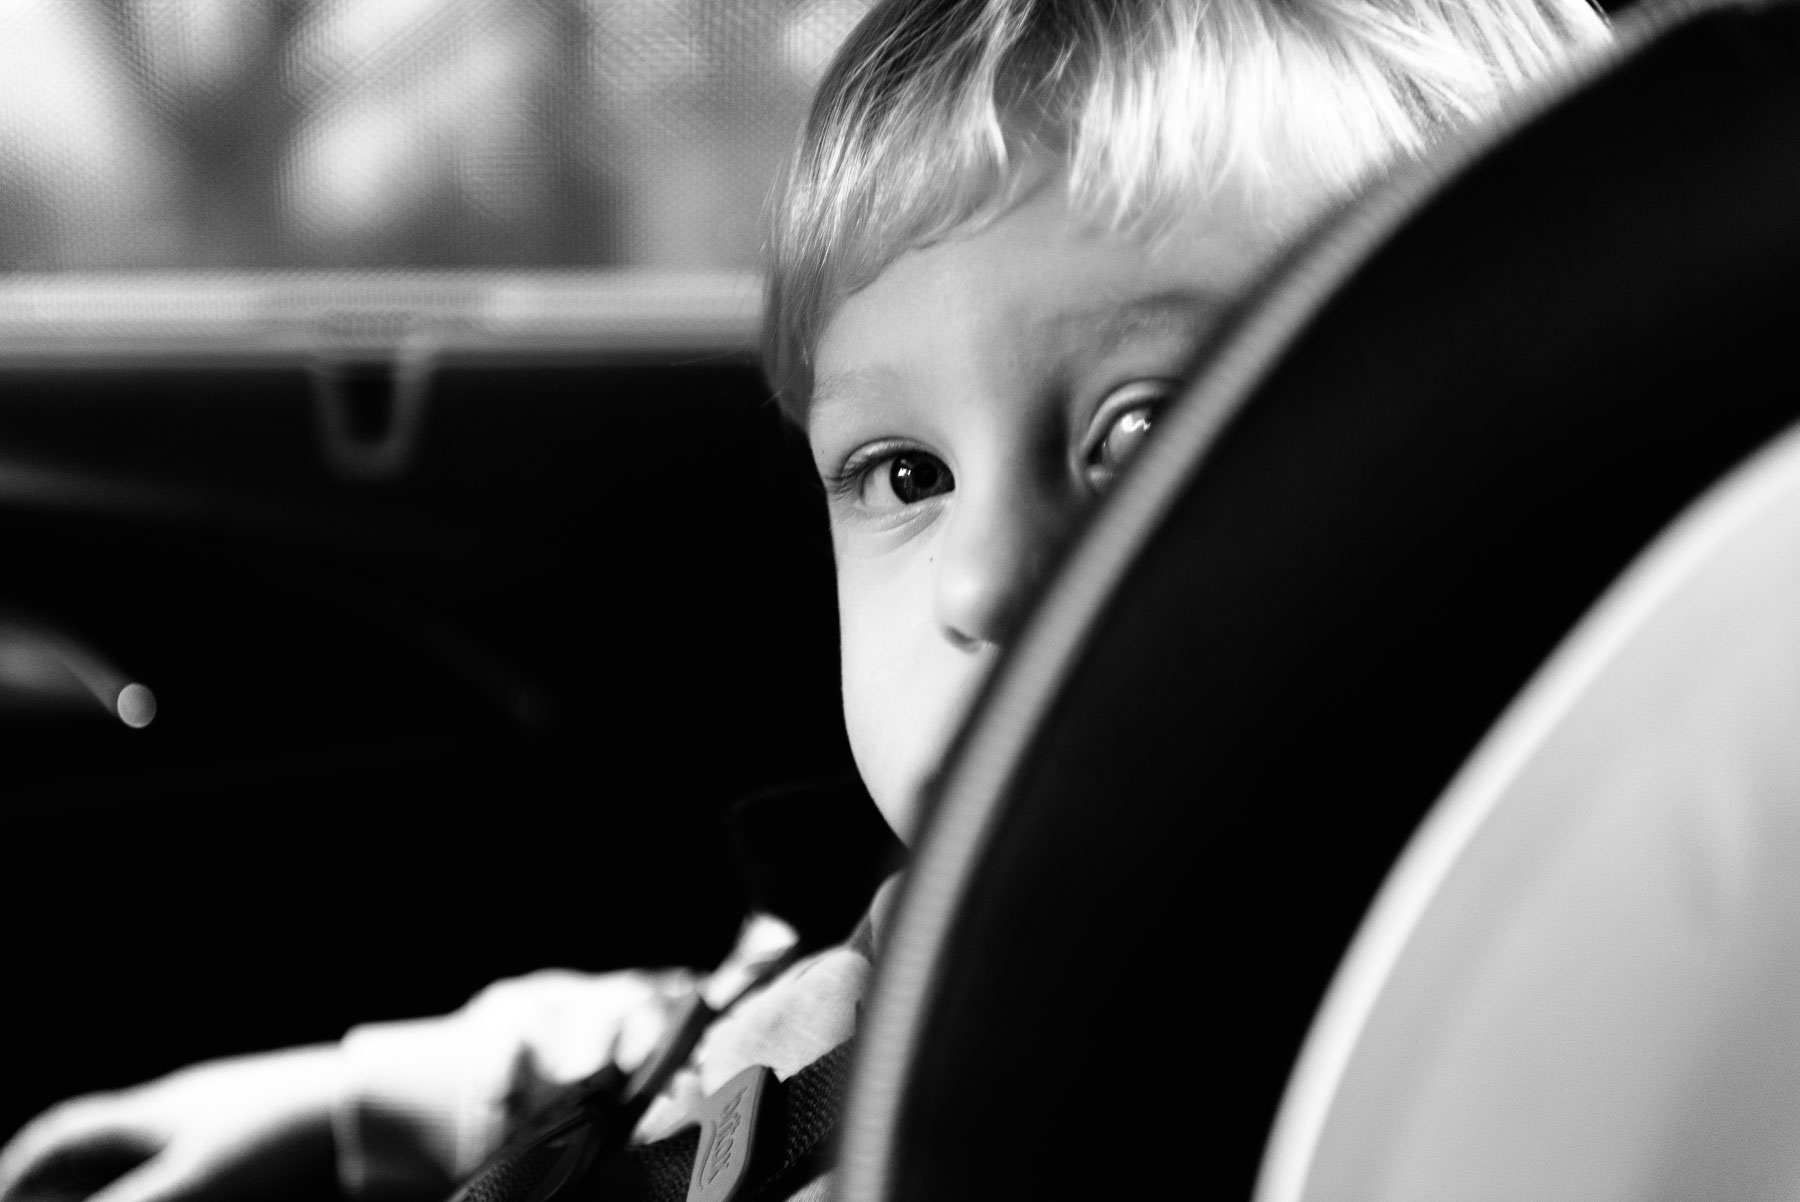 Toddler boy peeking over side of carseat